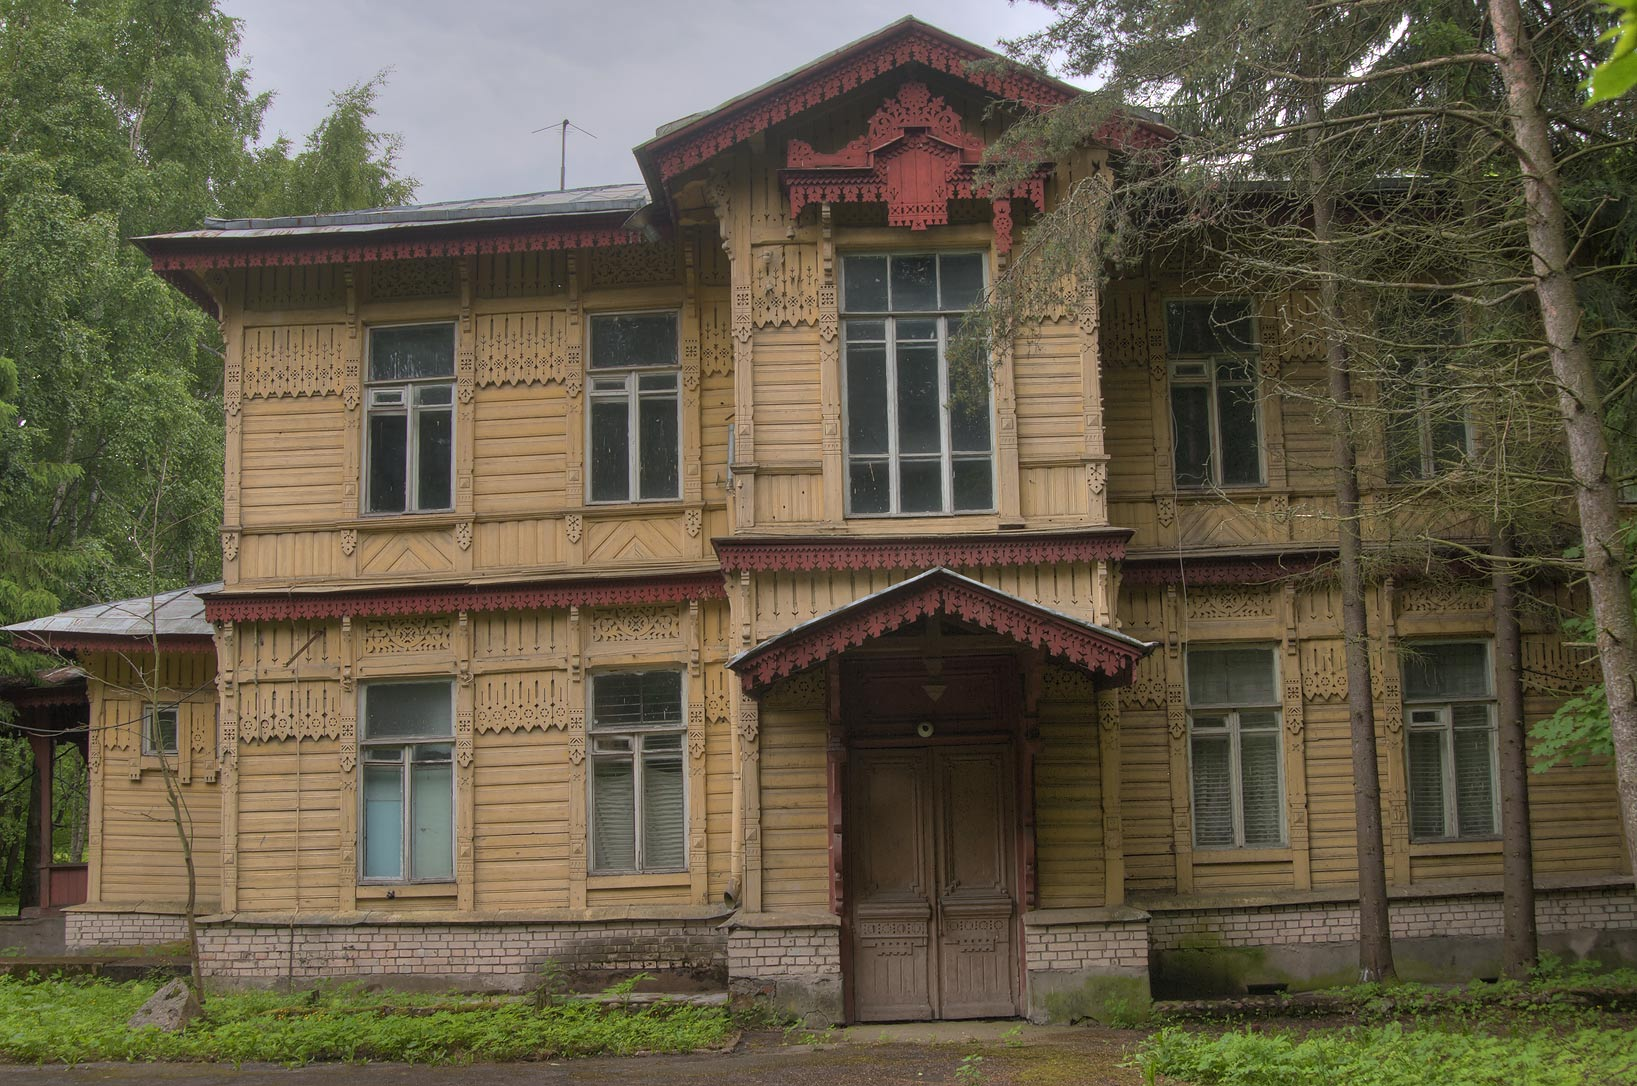 Vereshchagin Cottage (Dacha Vereshchagina) in Kronstadt. St.Petersburg, Russia